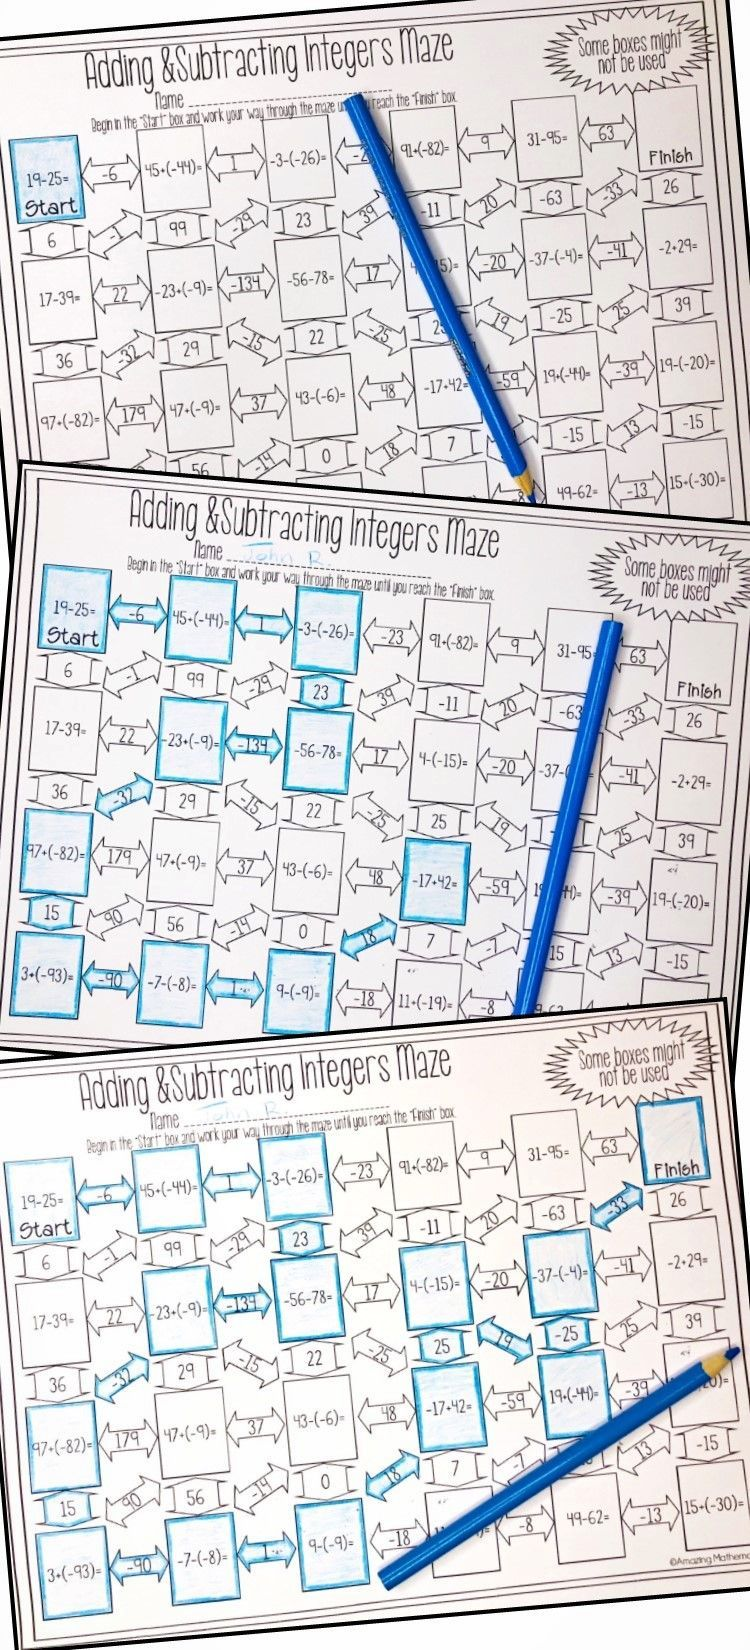 Adding and Subtracting Integers Maze Integers, Adding